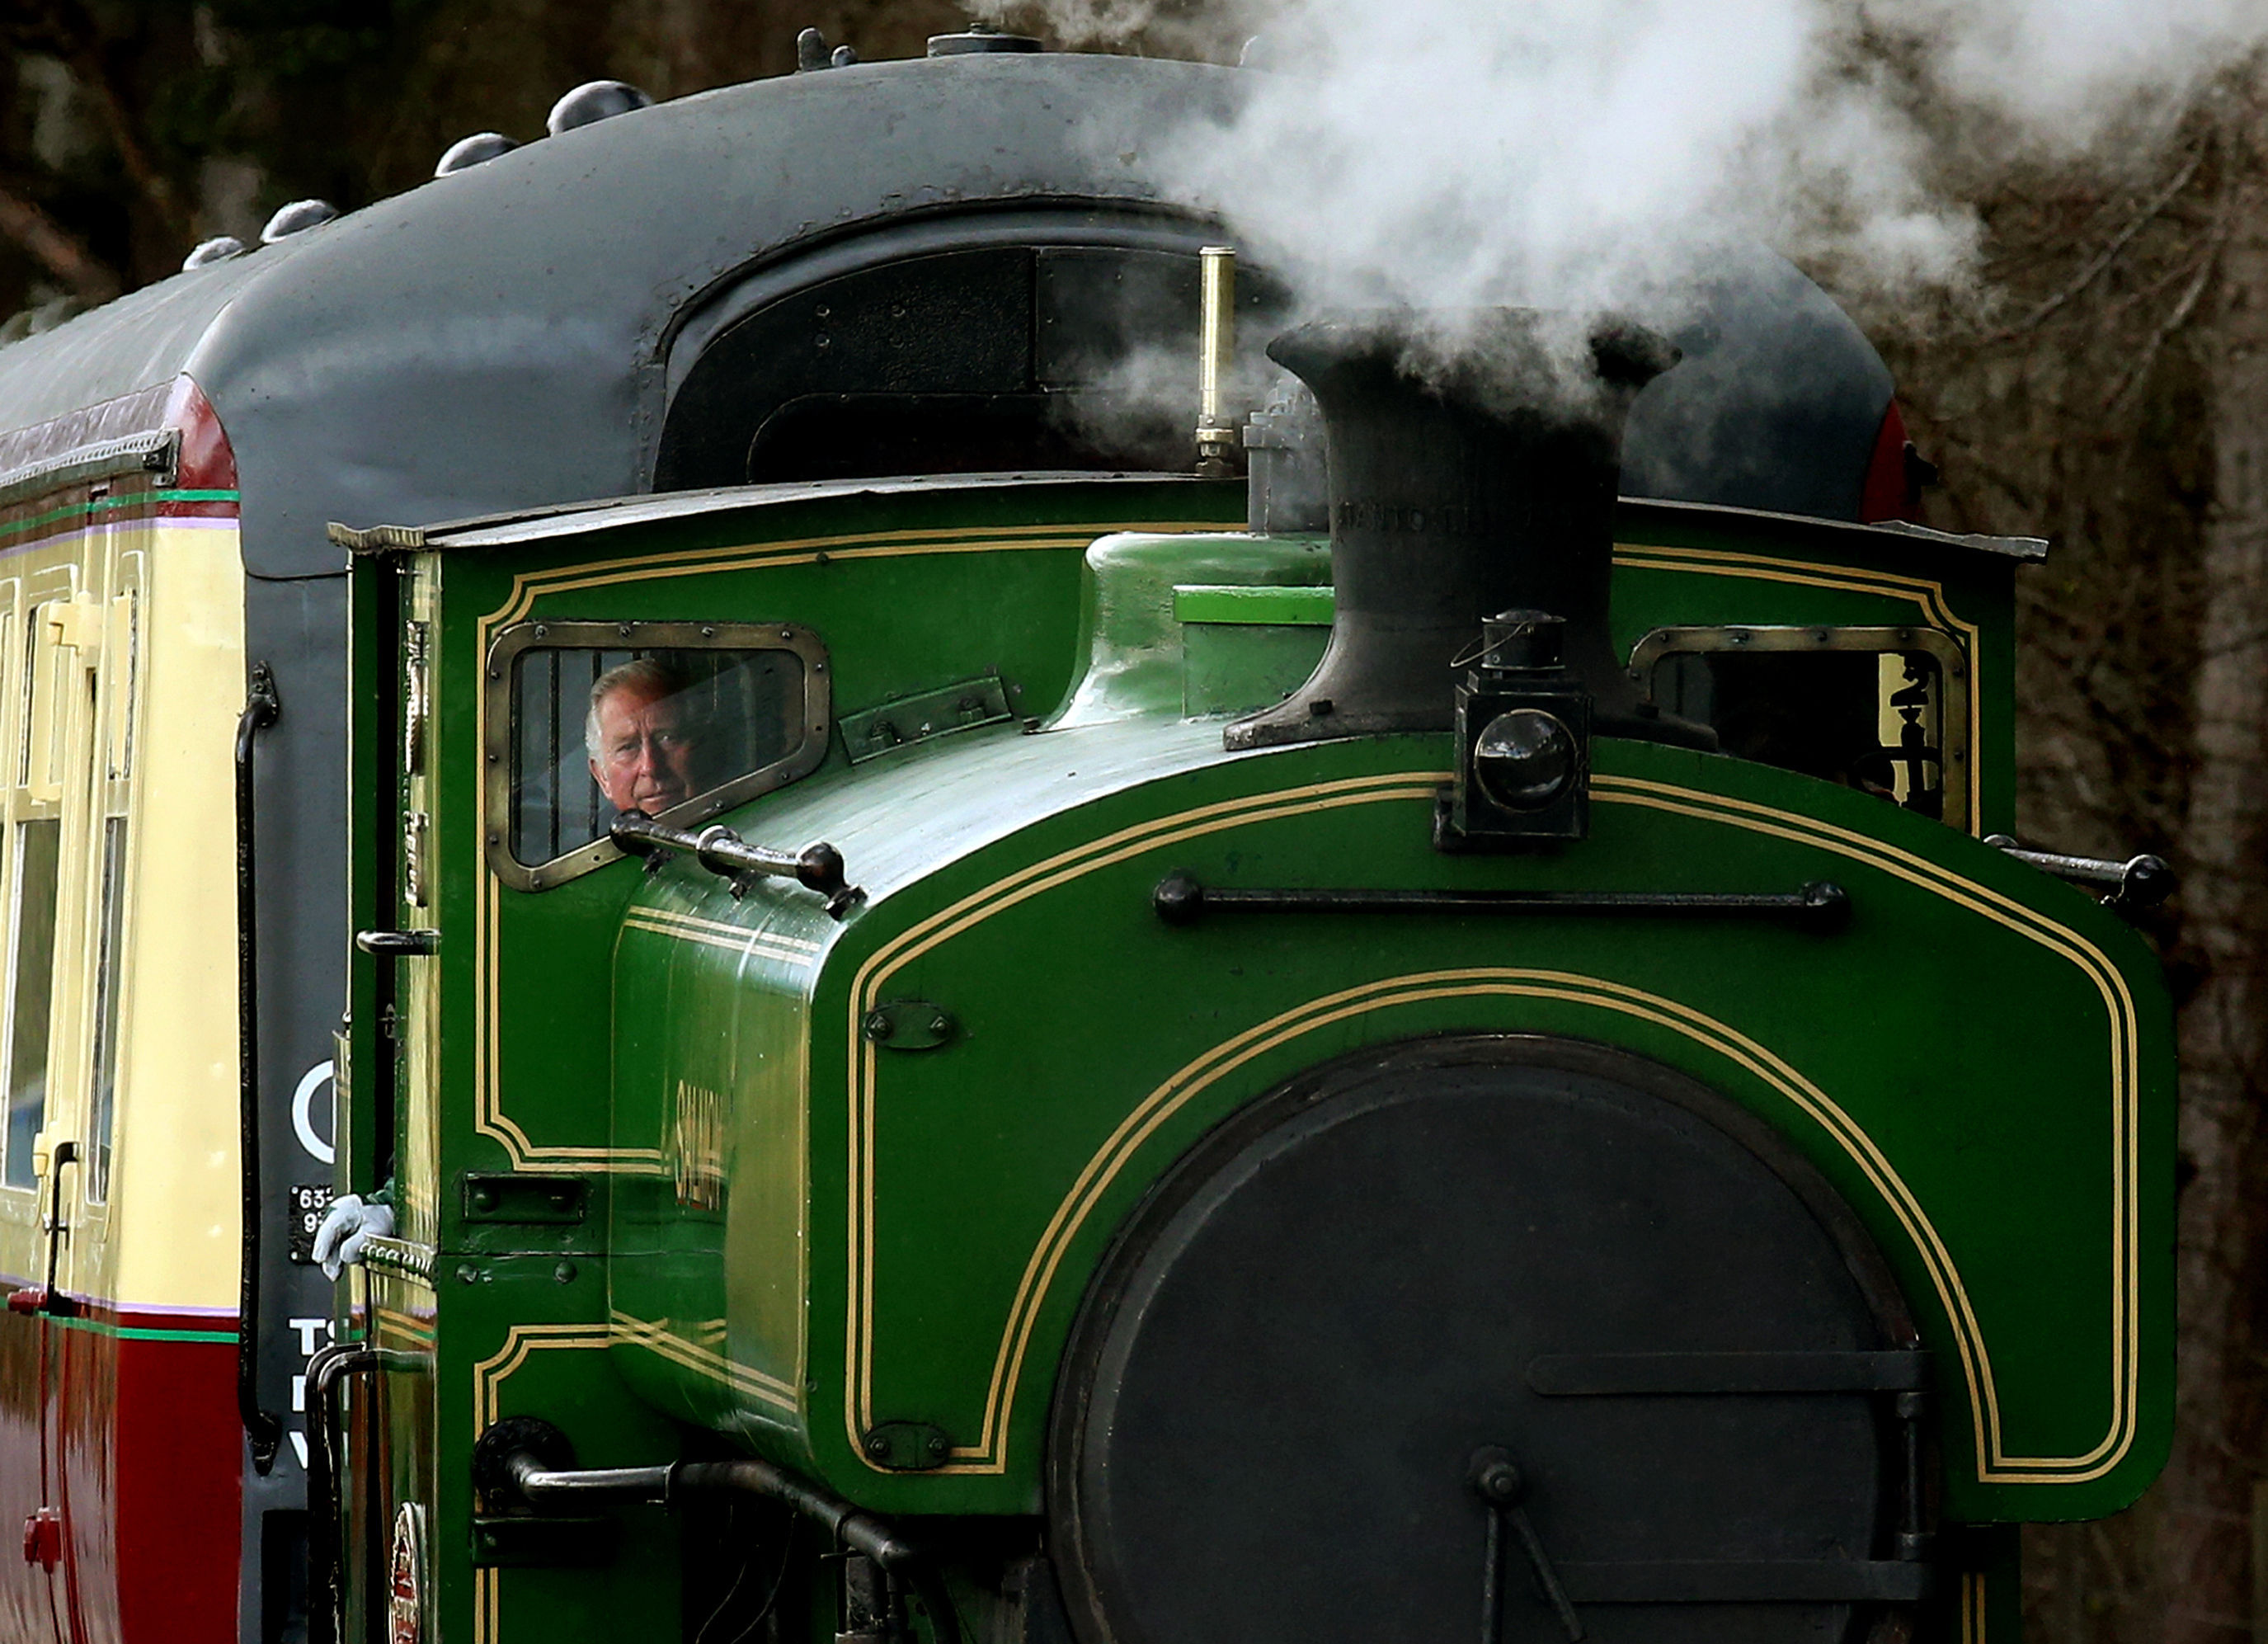 Royal Deeside Railway Aberdeen and the Northeast, Prince Charles pays visit to historic Royal Deeside railway ...